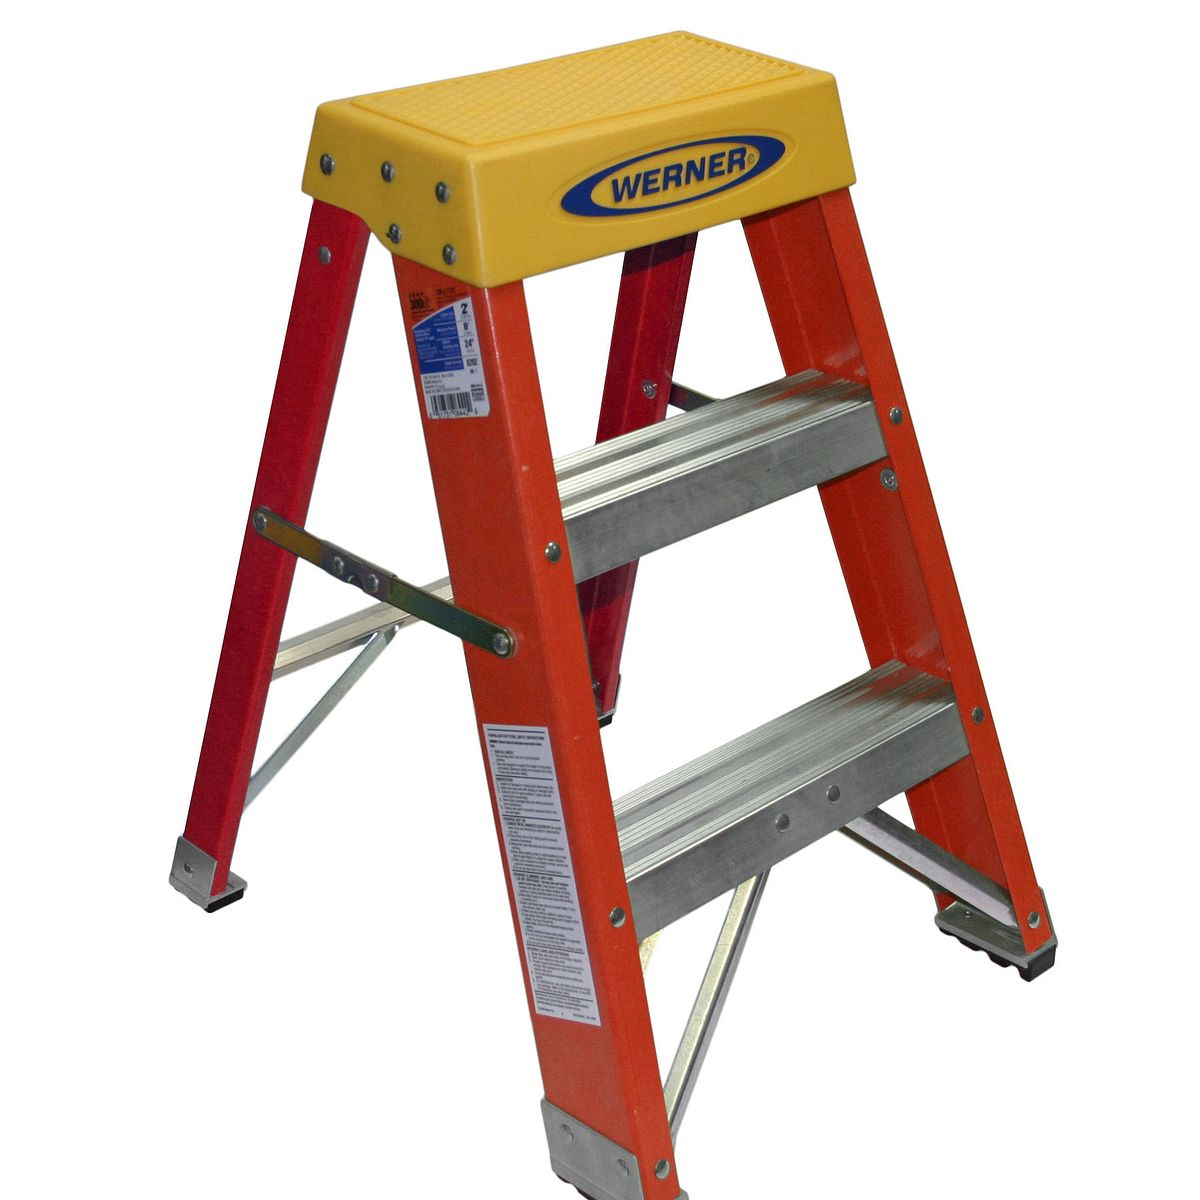 Stools and ladders